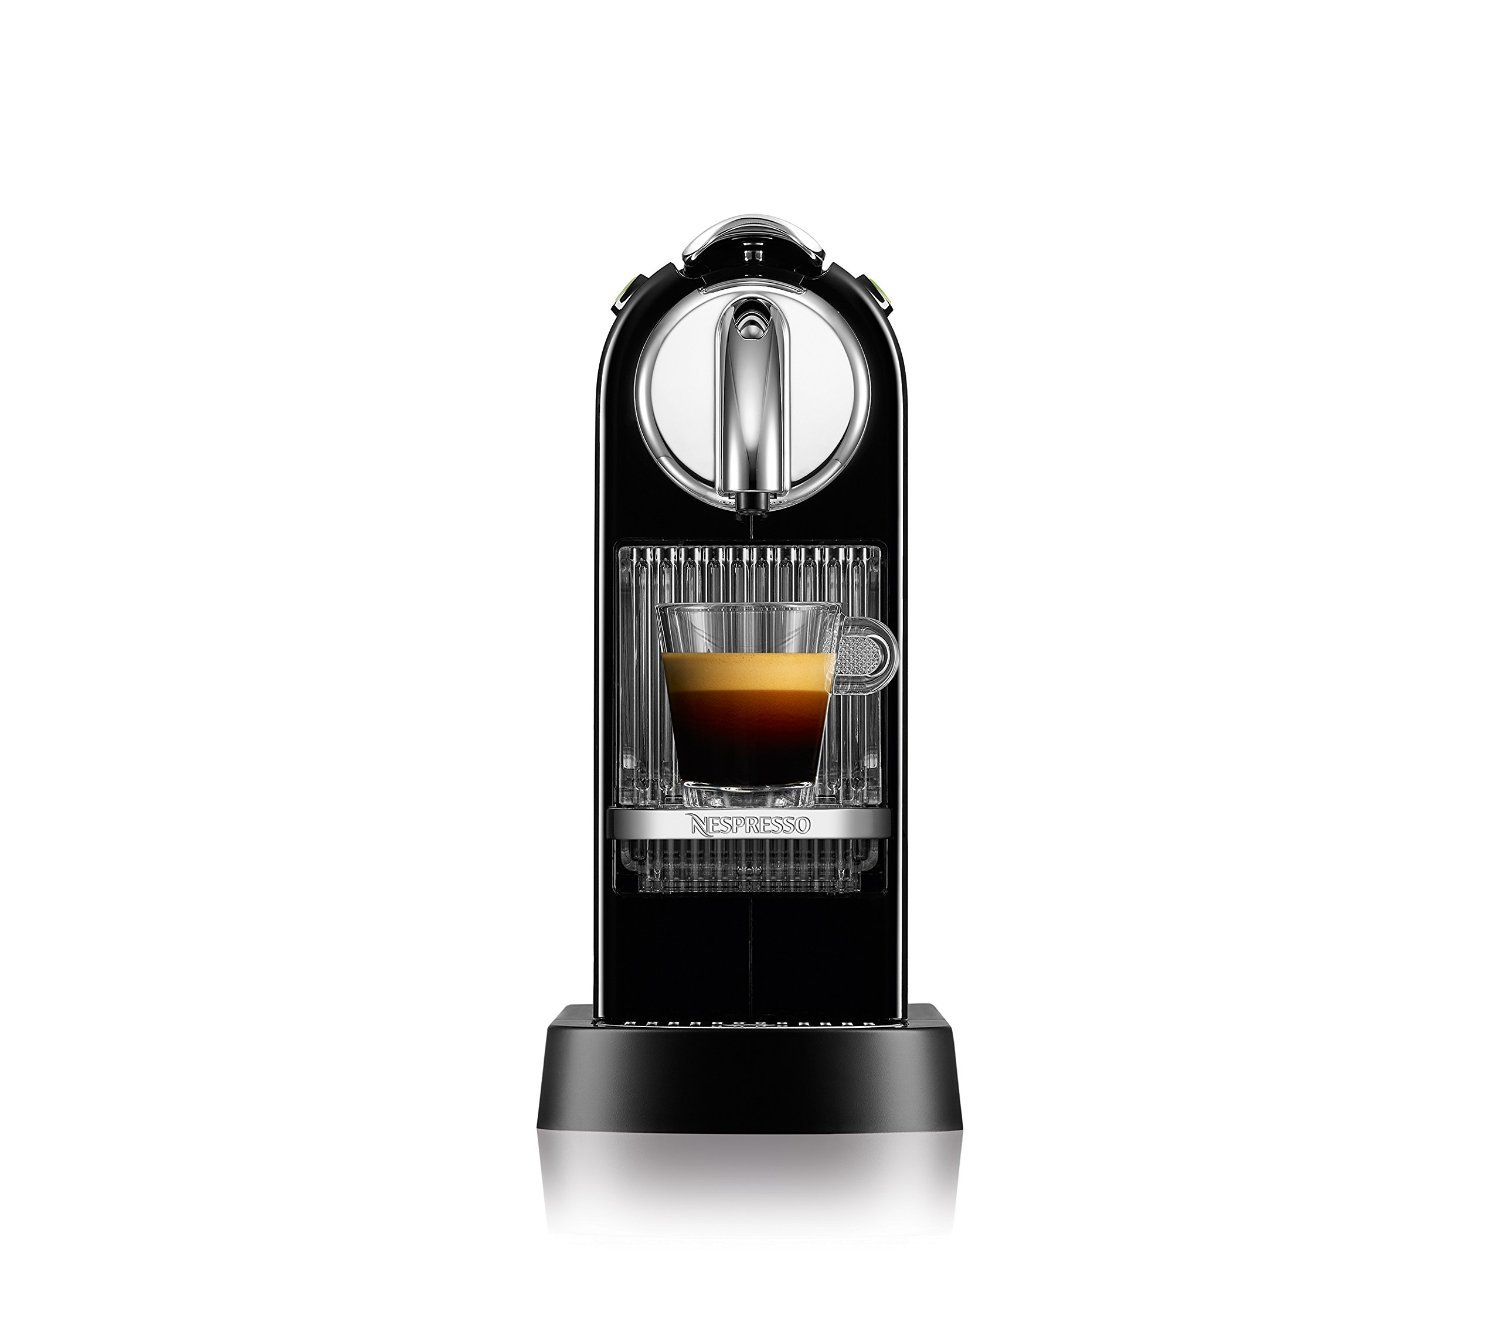 irrsistible desire nespresso If you want to learn how to be irresistible to men intimacy, desire, and fun to every interaction with your loved one connect with derek on twitter.